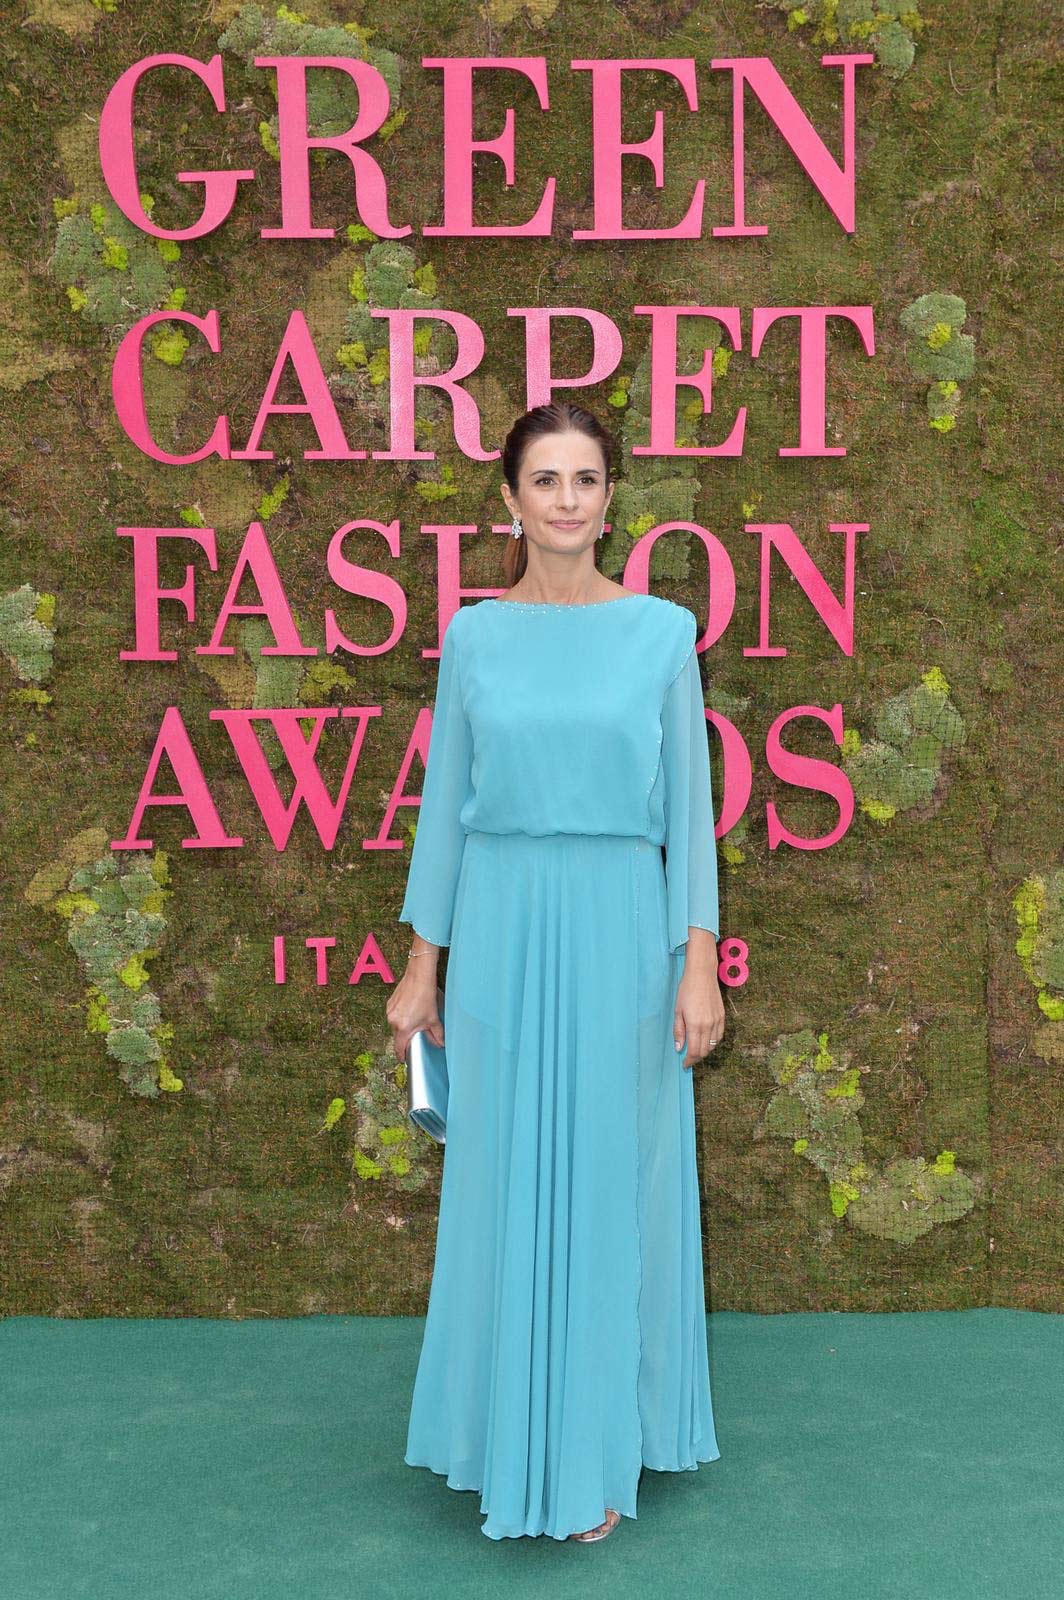 Green Carpet Fashion Awards 2018 - Livia Firth - Hair and Make Up by Massimo Serini